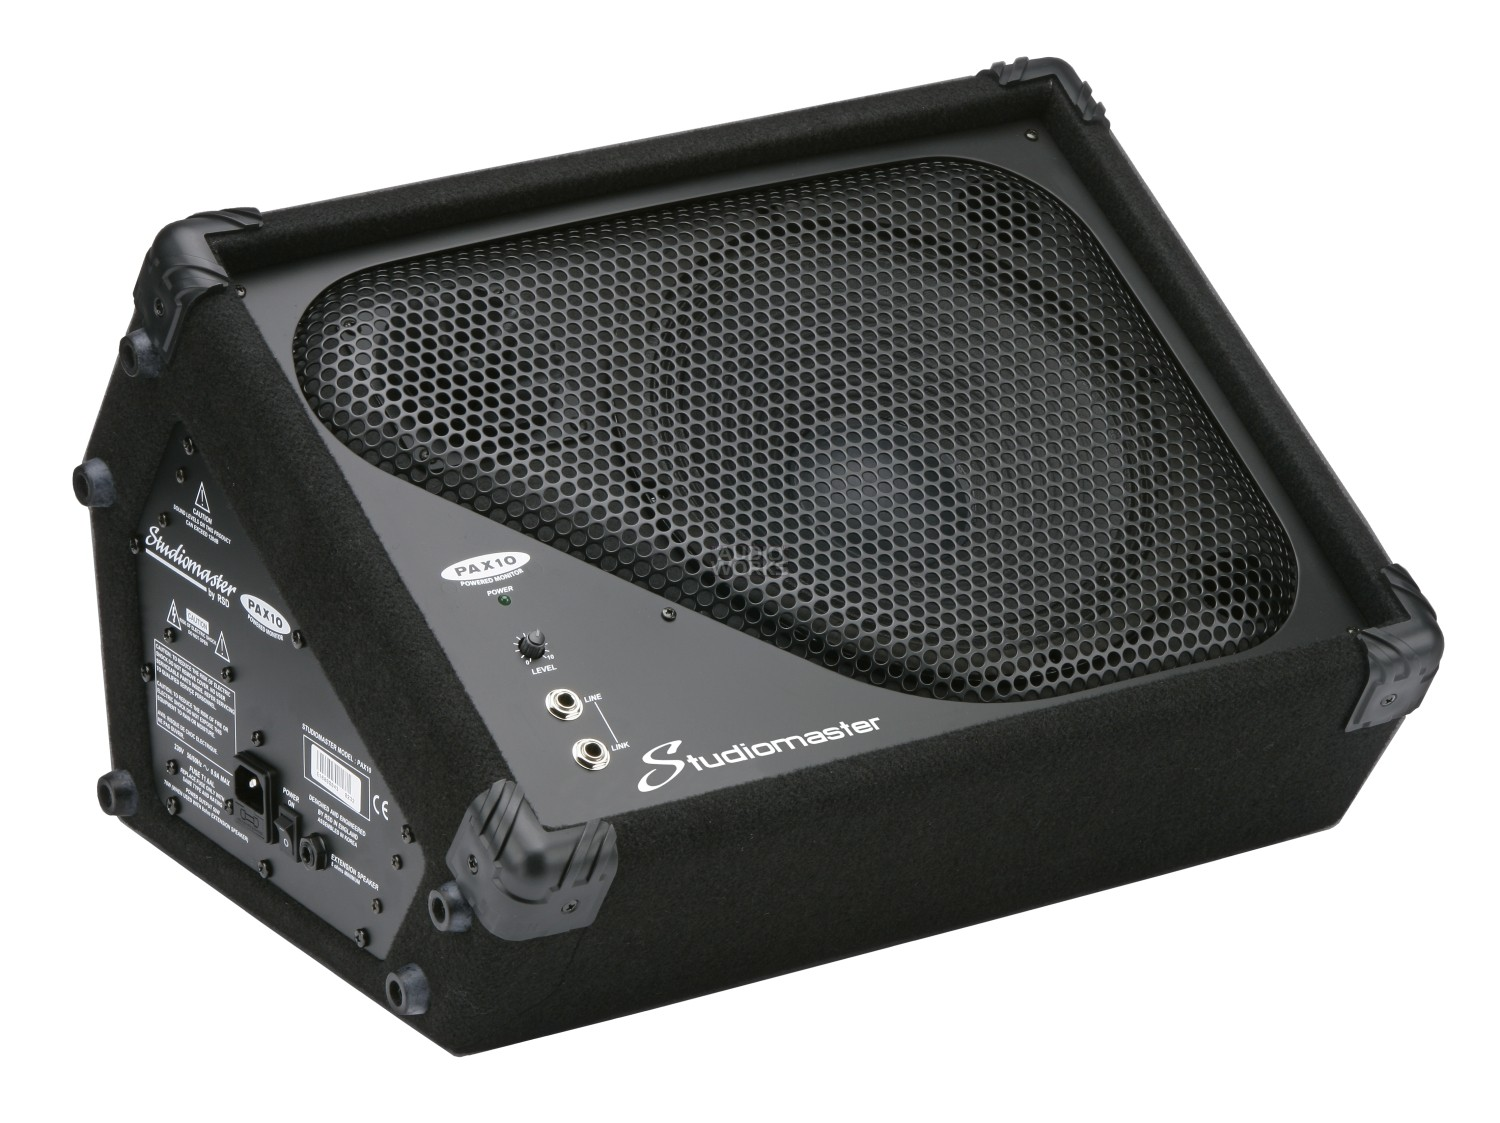 STUDIOMASTER PAX10 70W PROFESSIONAL ACTIVE STAGE MONITOR